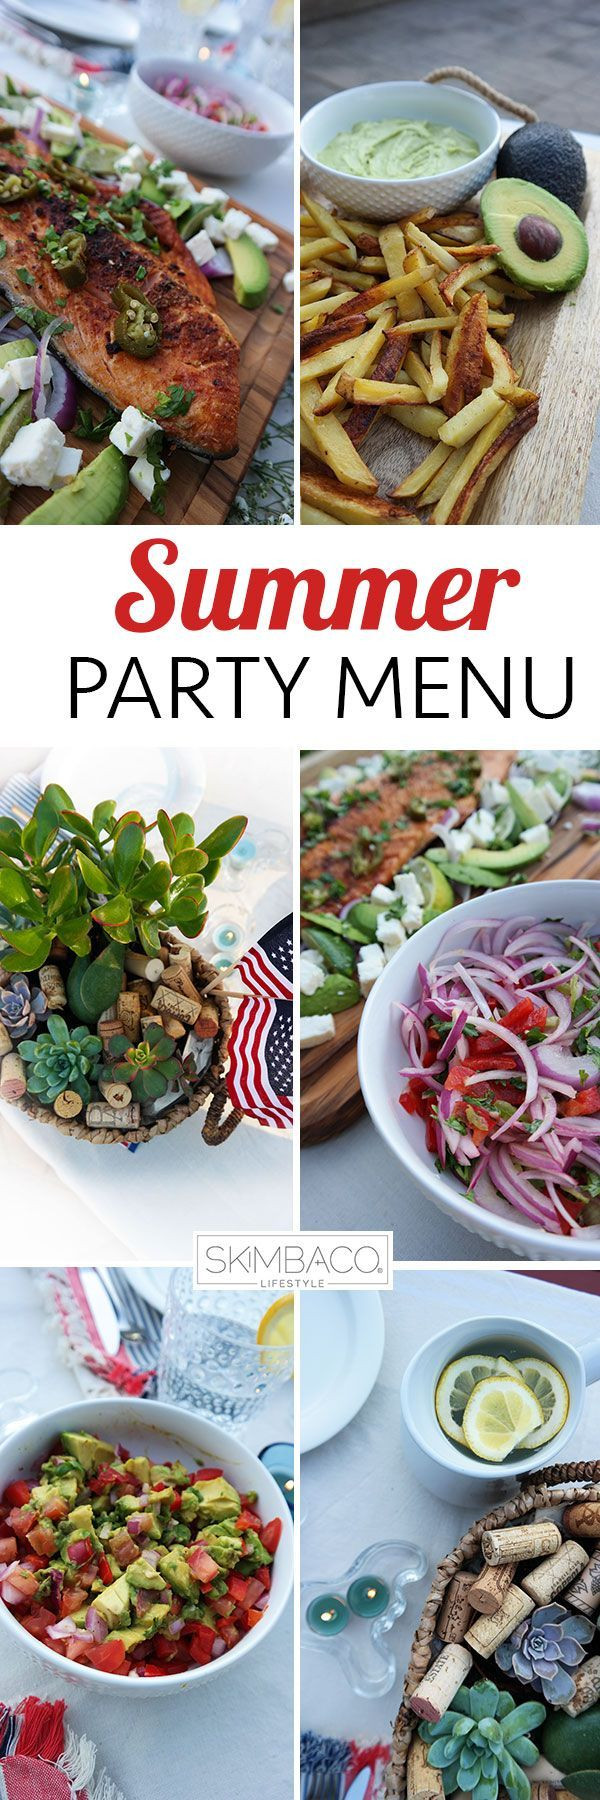 Summer Dinner Menu  17 Best images about The Ultimate 4th of July on Pinterest